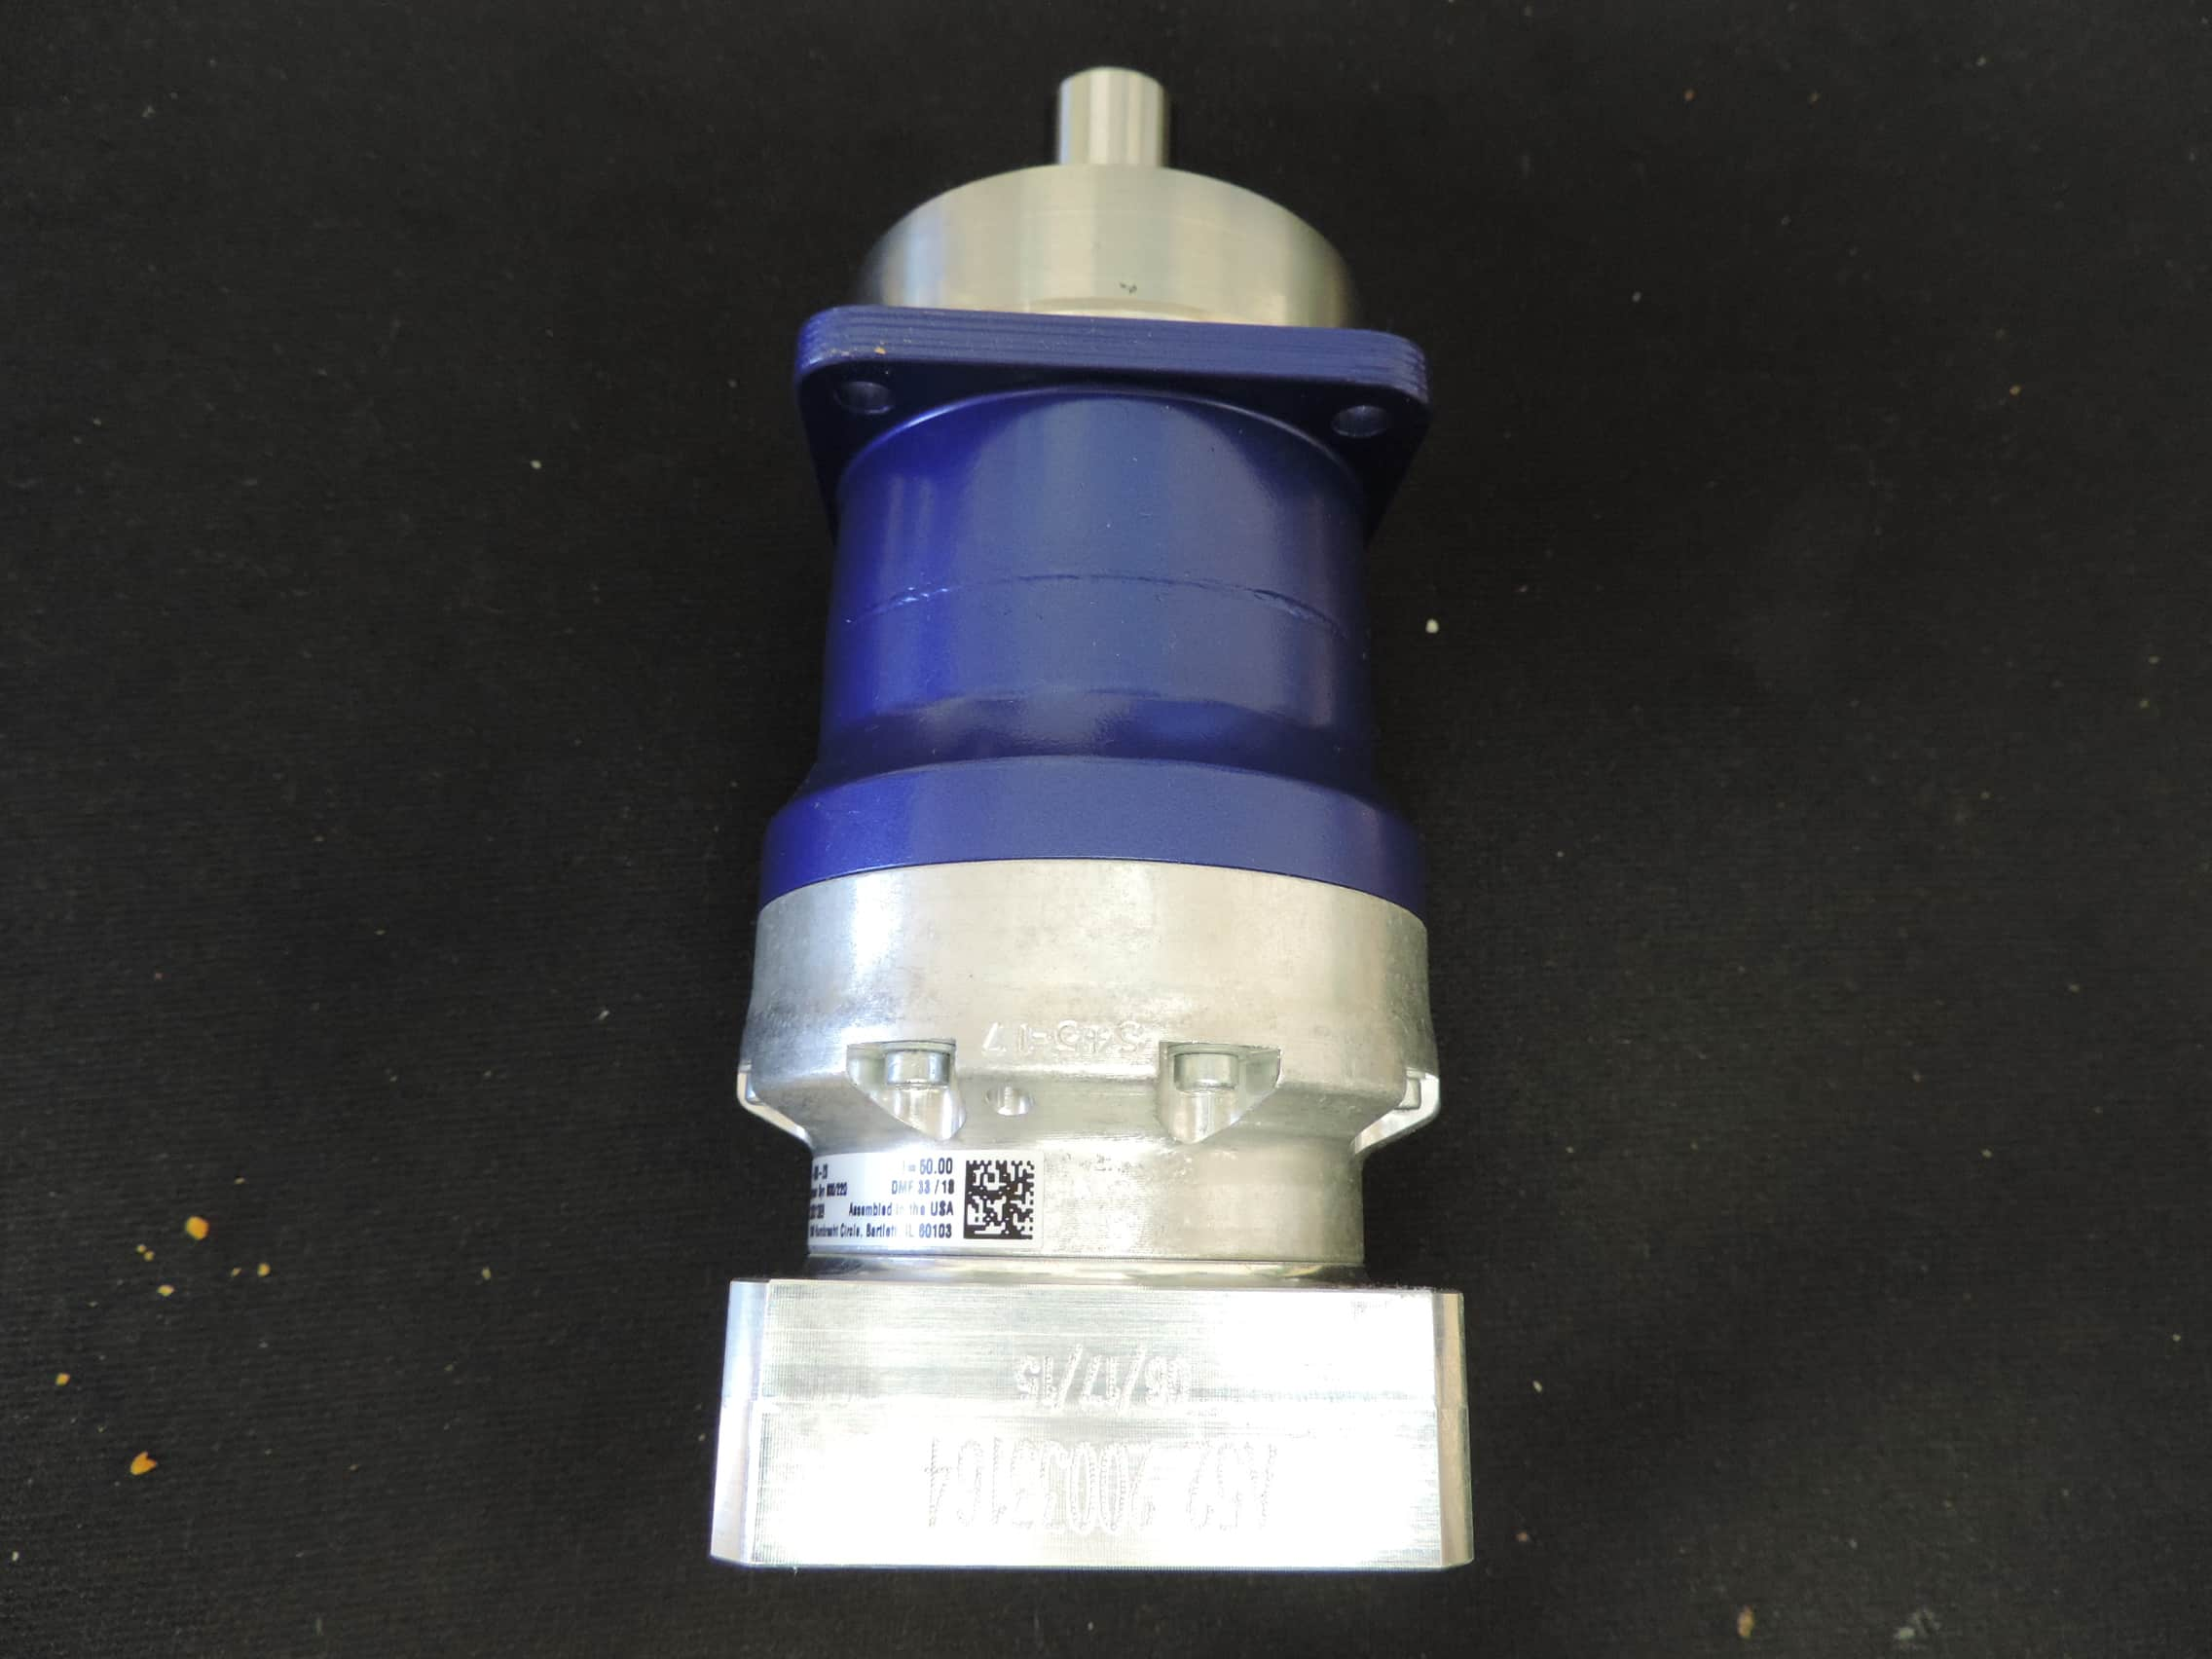 Wittenstein™ OEM Gearbox Motor for ABI 3900 Synthesizer (Model SP060S)